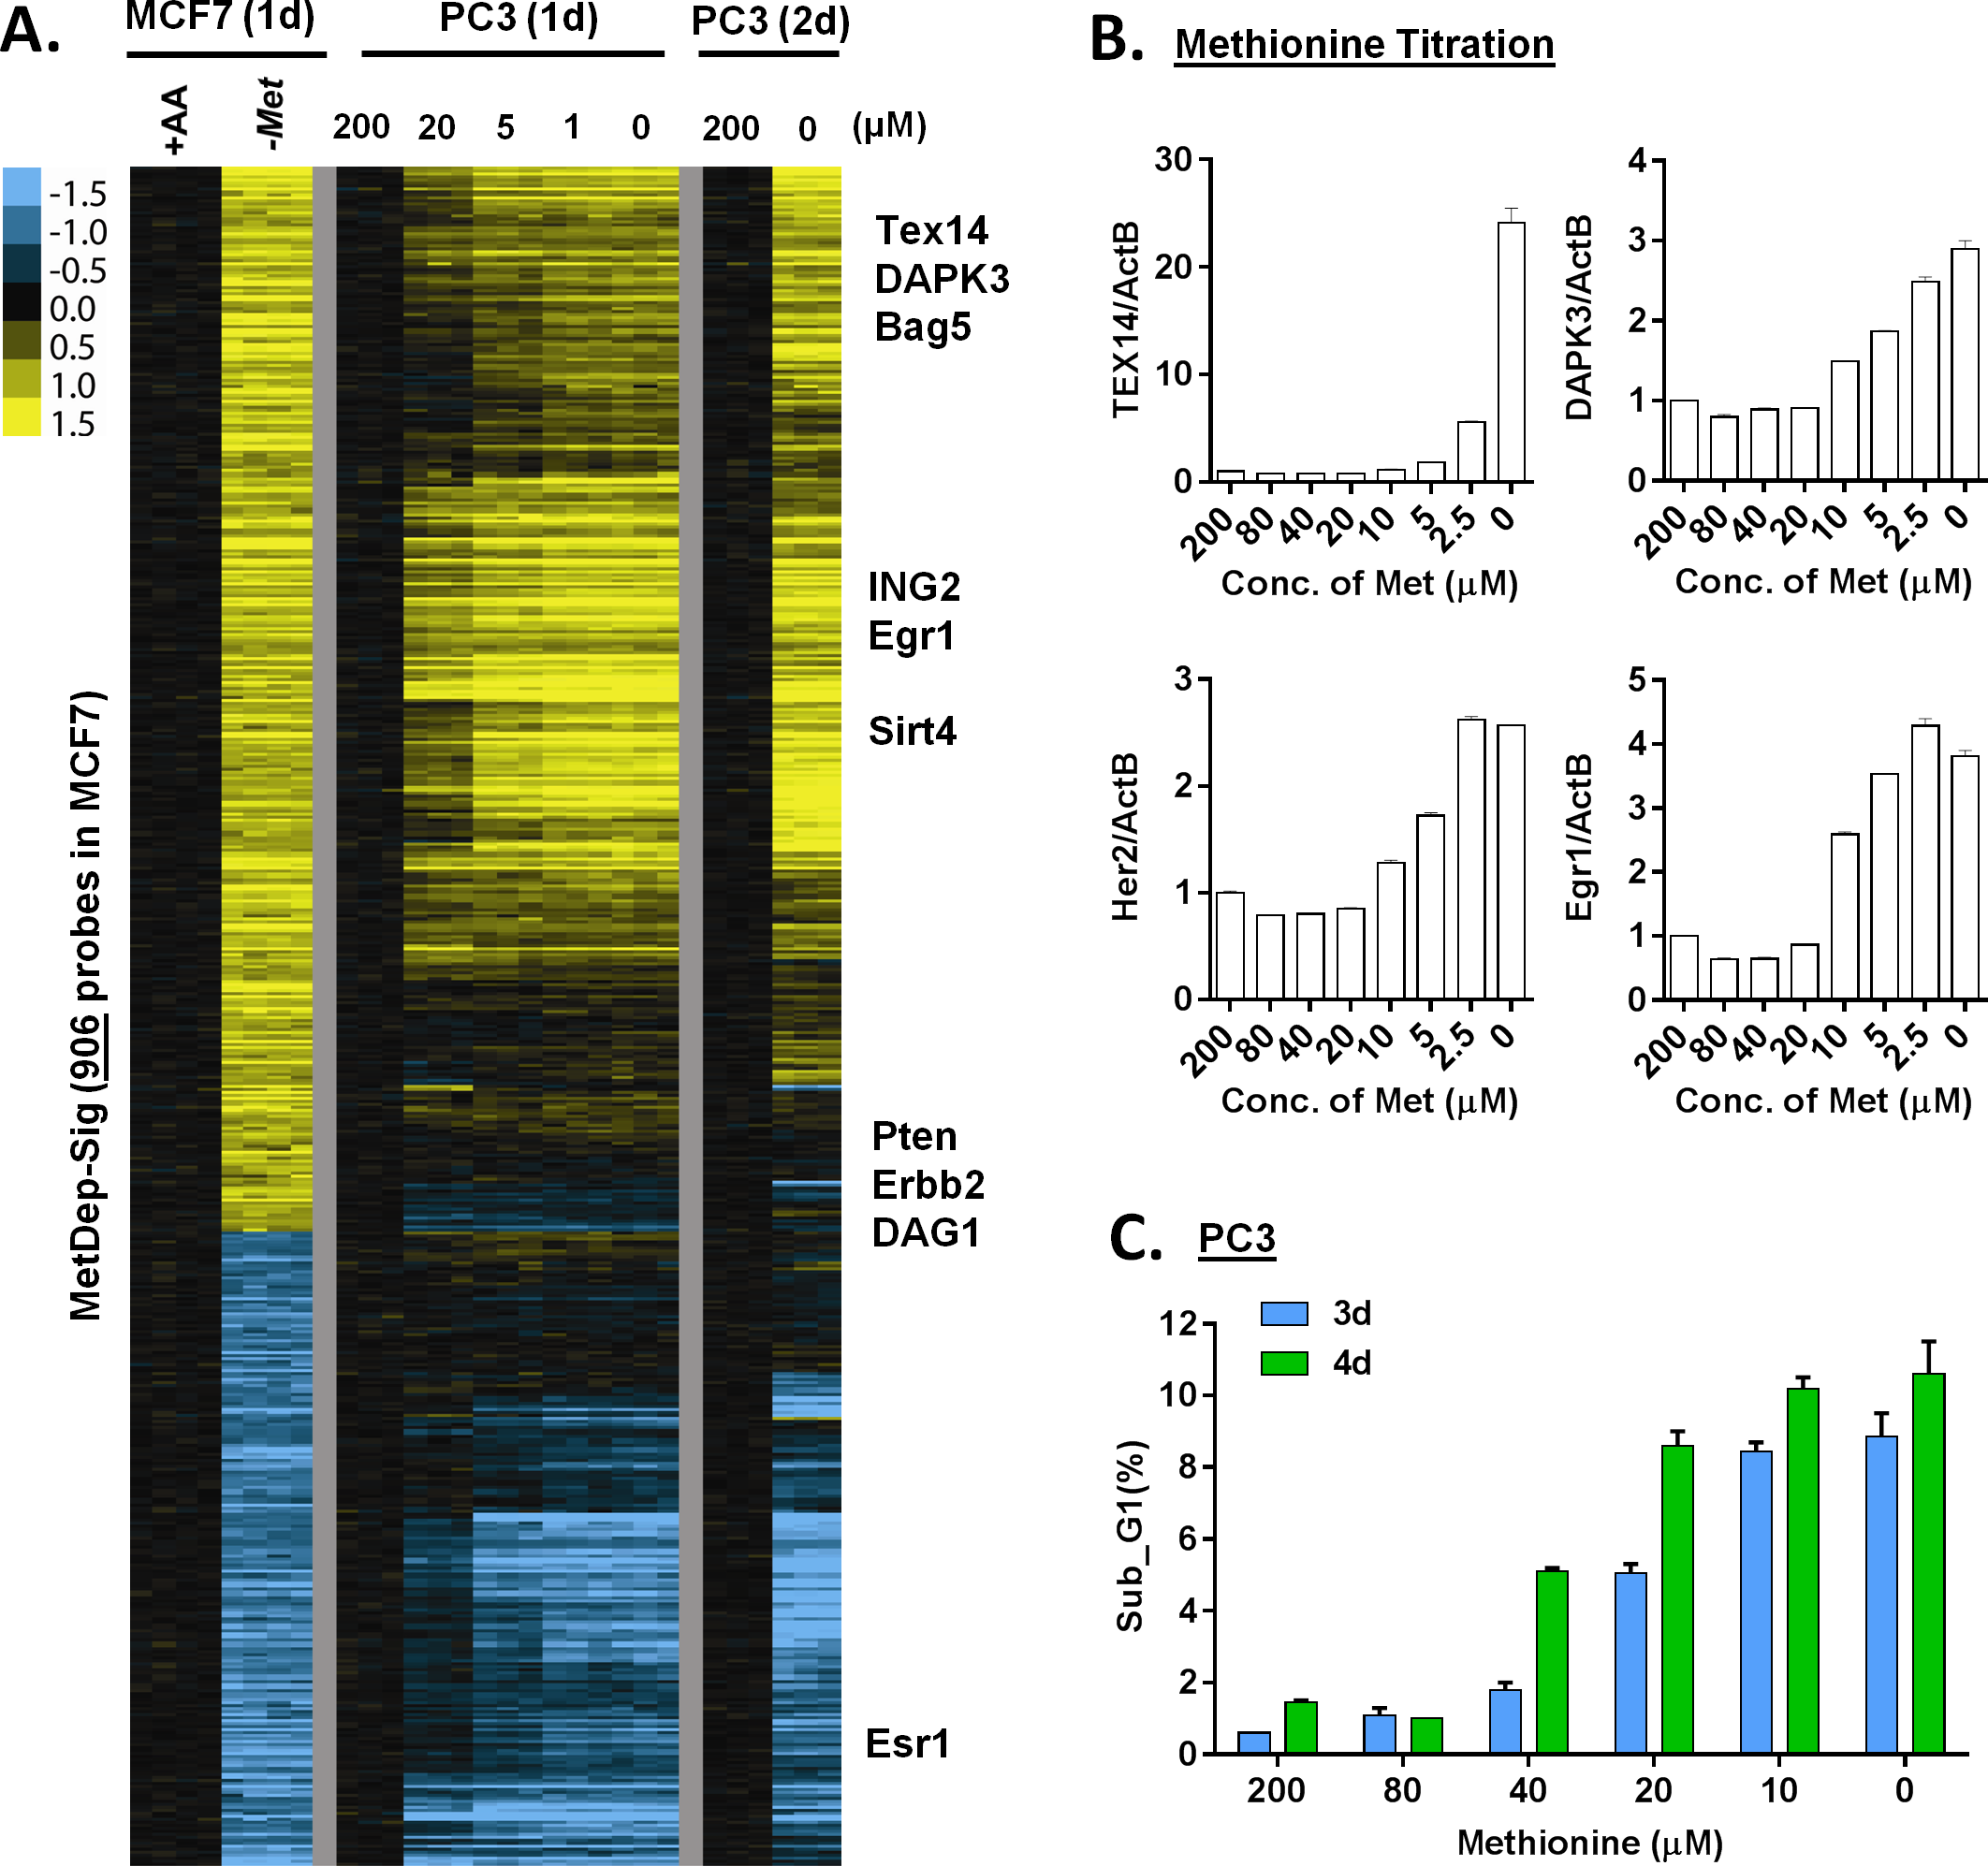 The transcriptional response of methionine deprivation between breast and prostate cancer cells.